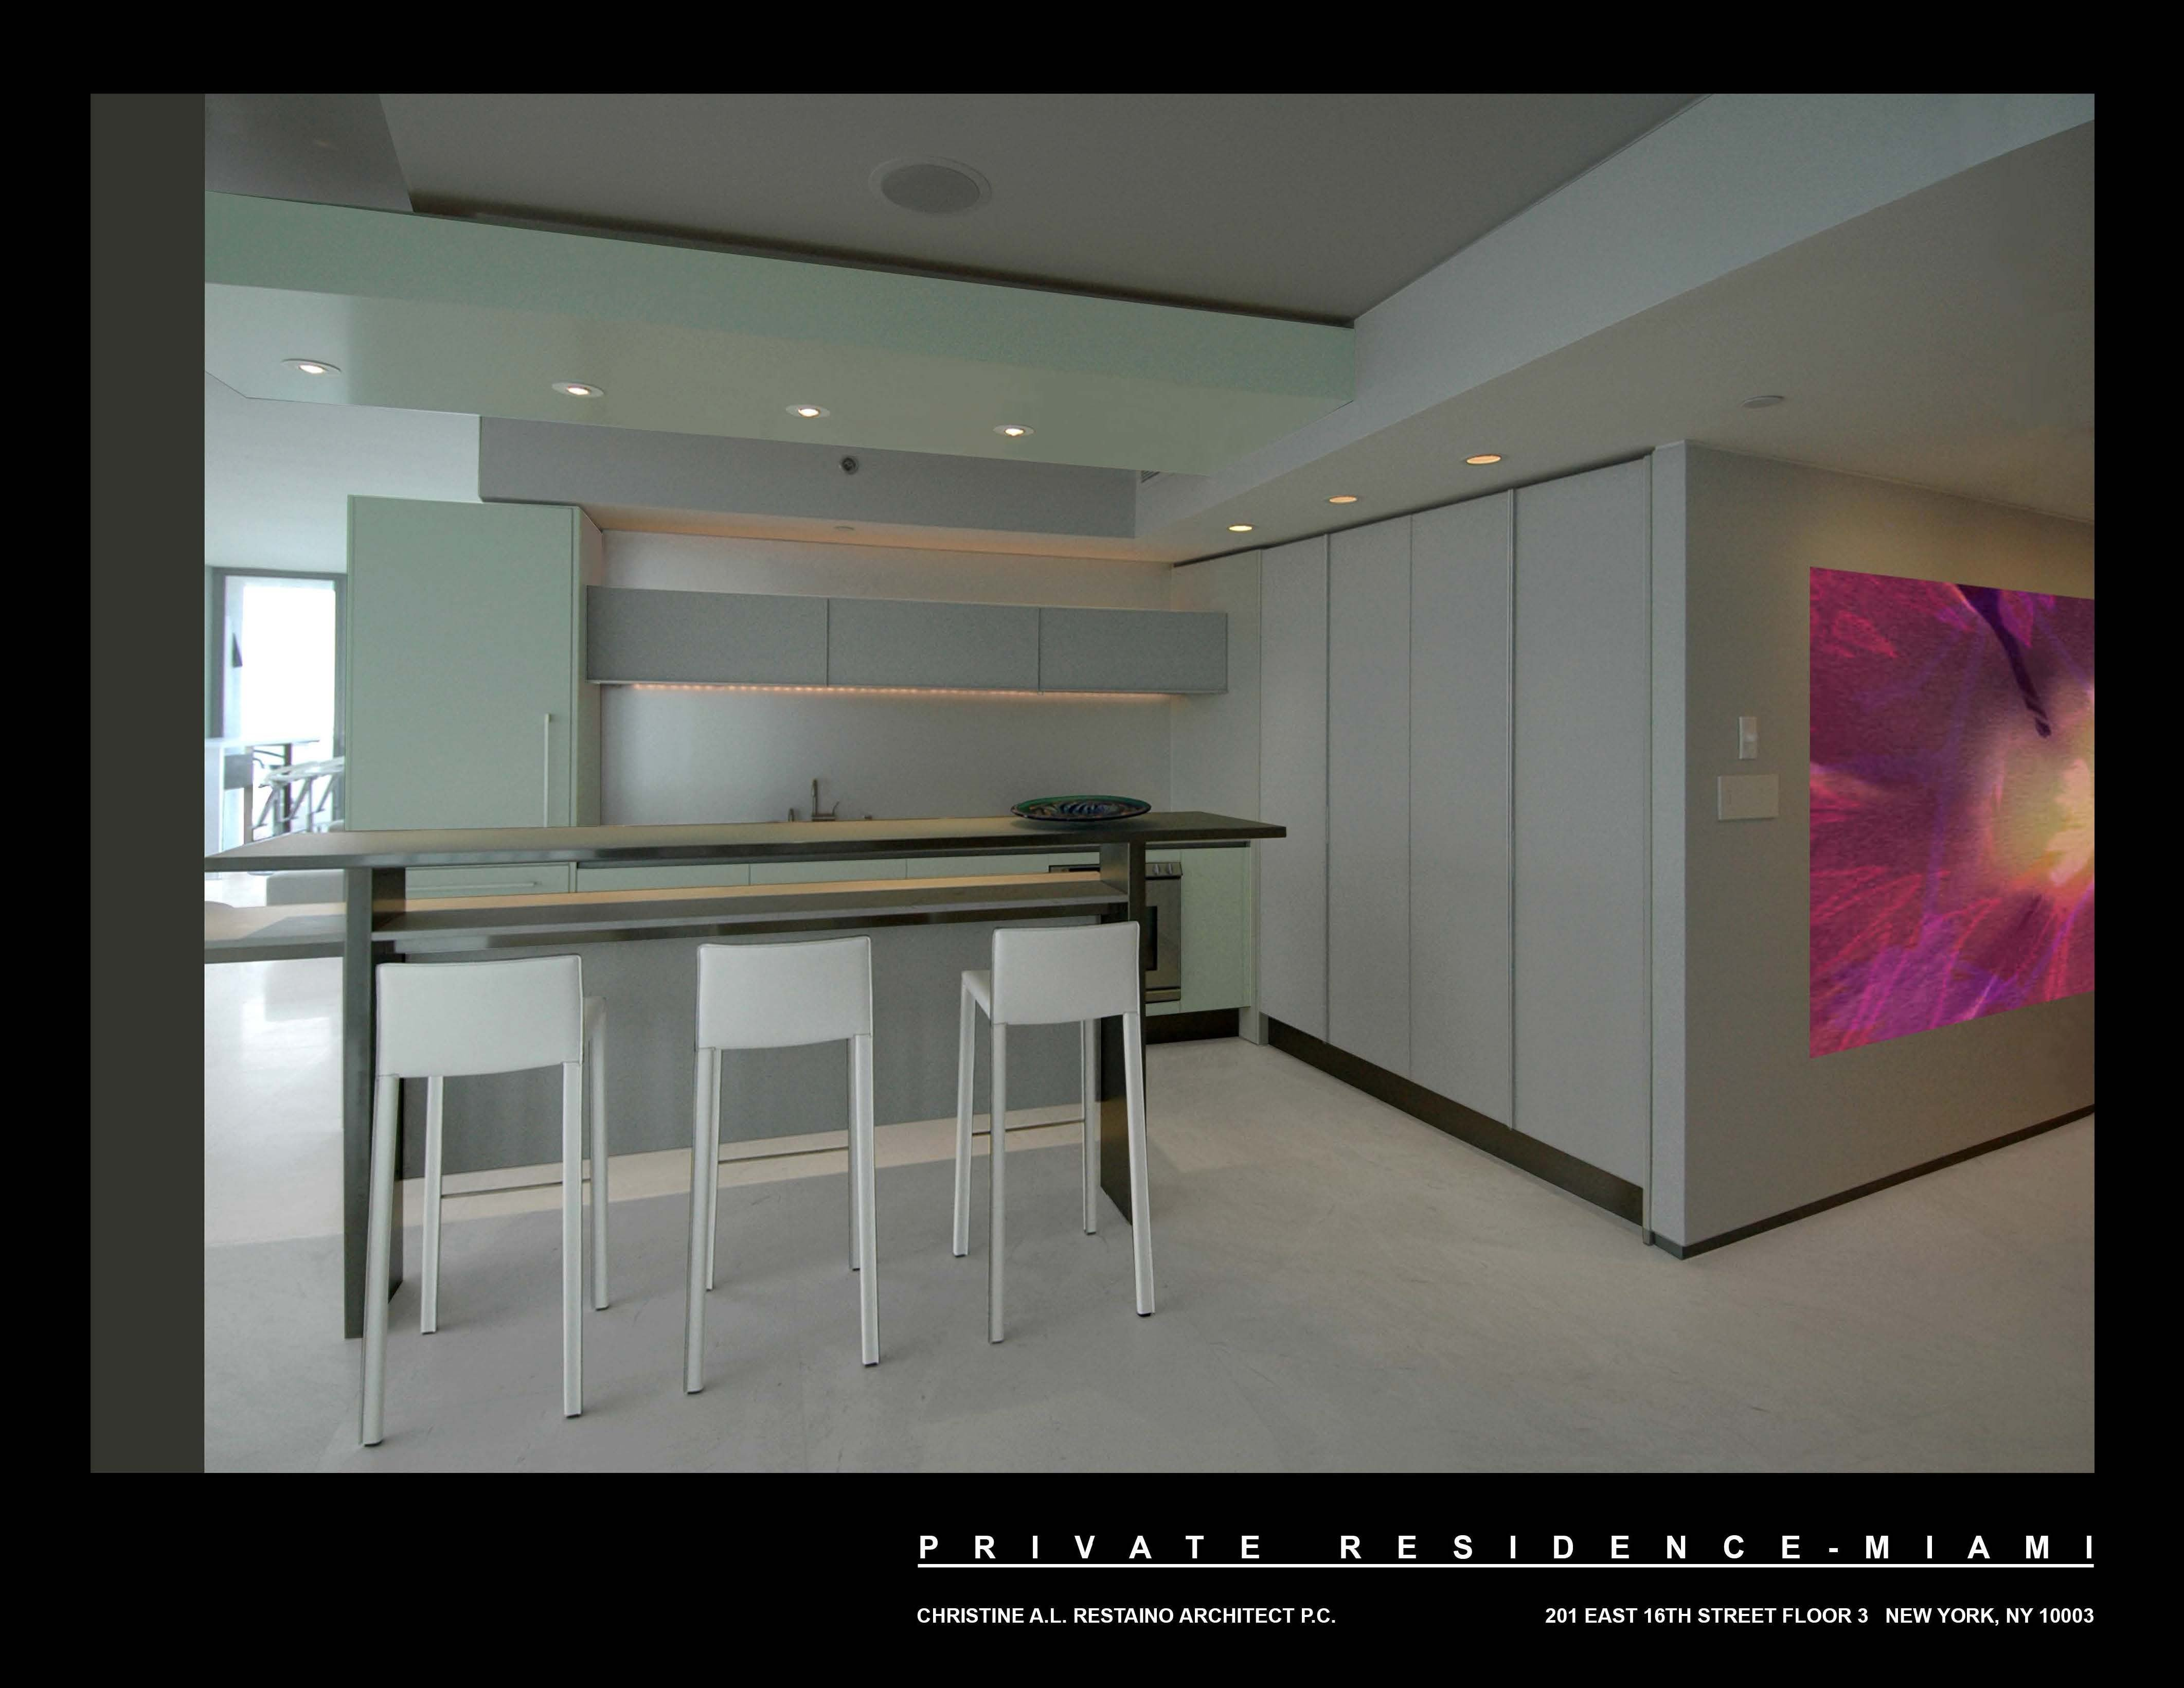 Miami Penthouse Kitchen - Overview From Master Bedroom Dan Zaharia